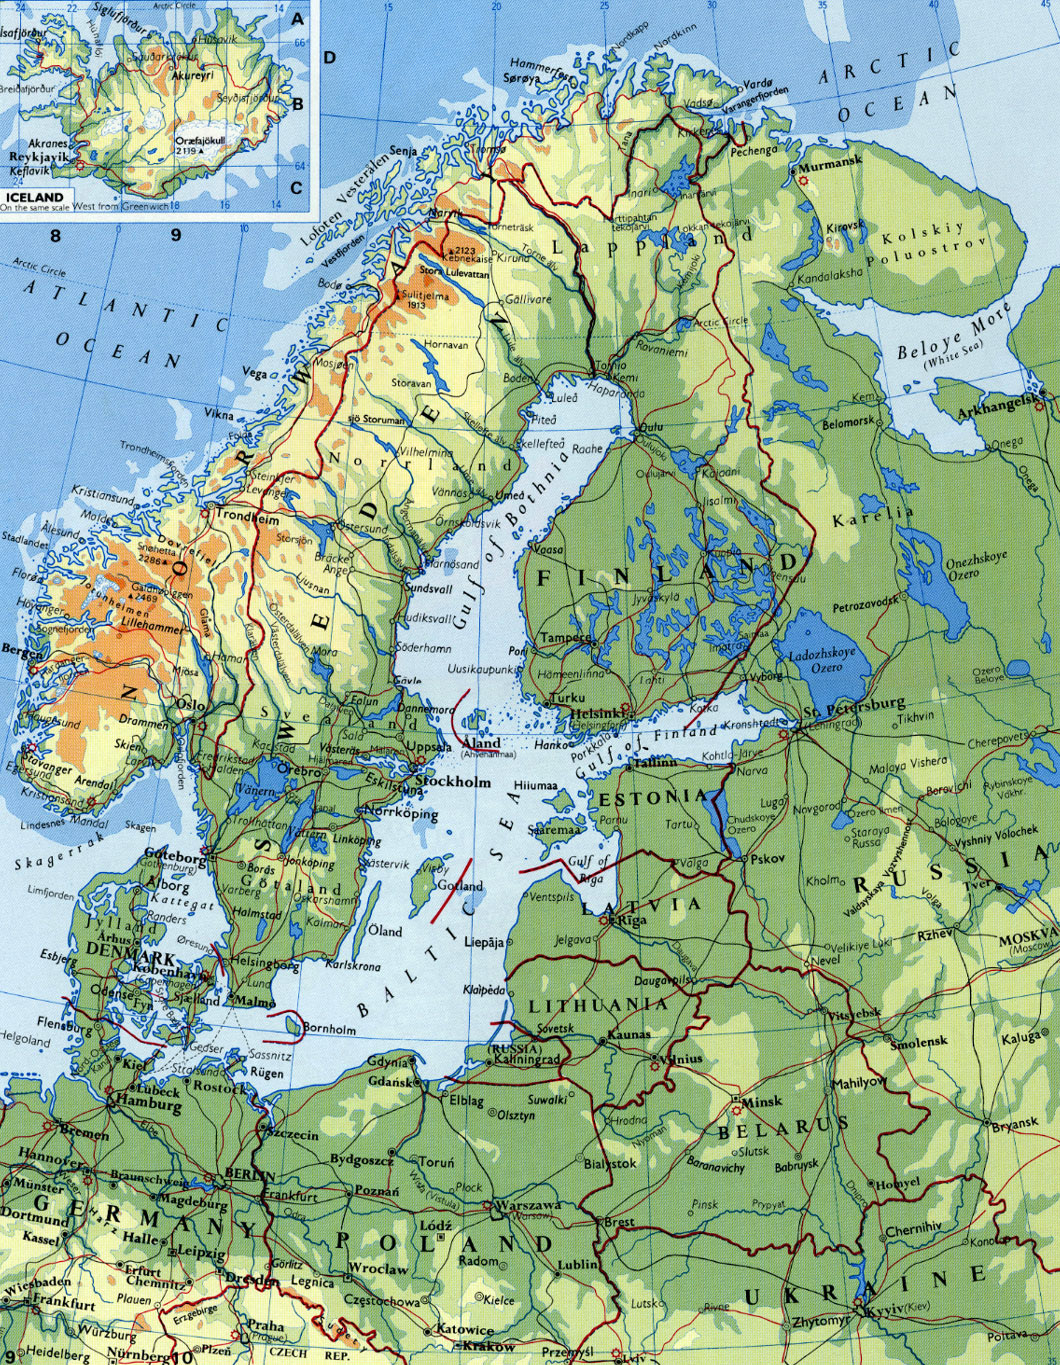 Picture of: Maps Of Baltic And Scandinavia Detailed Political Relief Road And Other Maps Of Baltic States Baltic Countries On The Maps Baltic And Scandinavia Maps